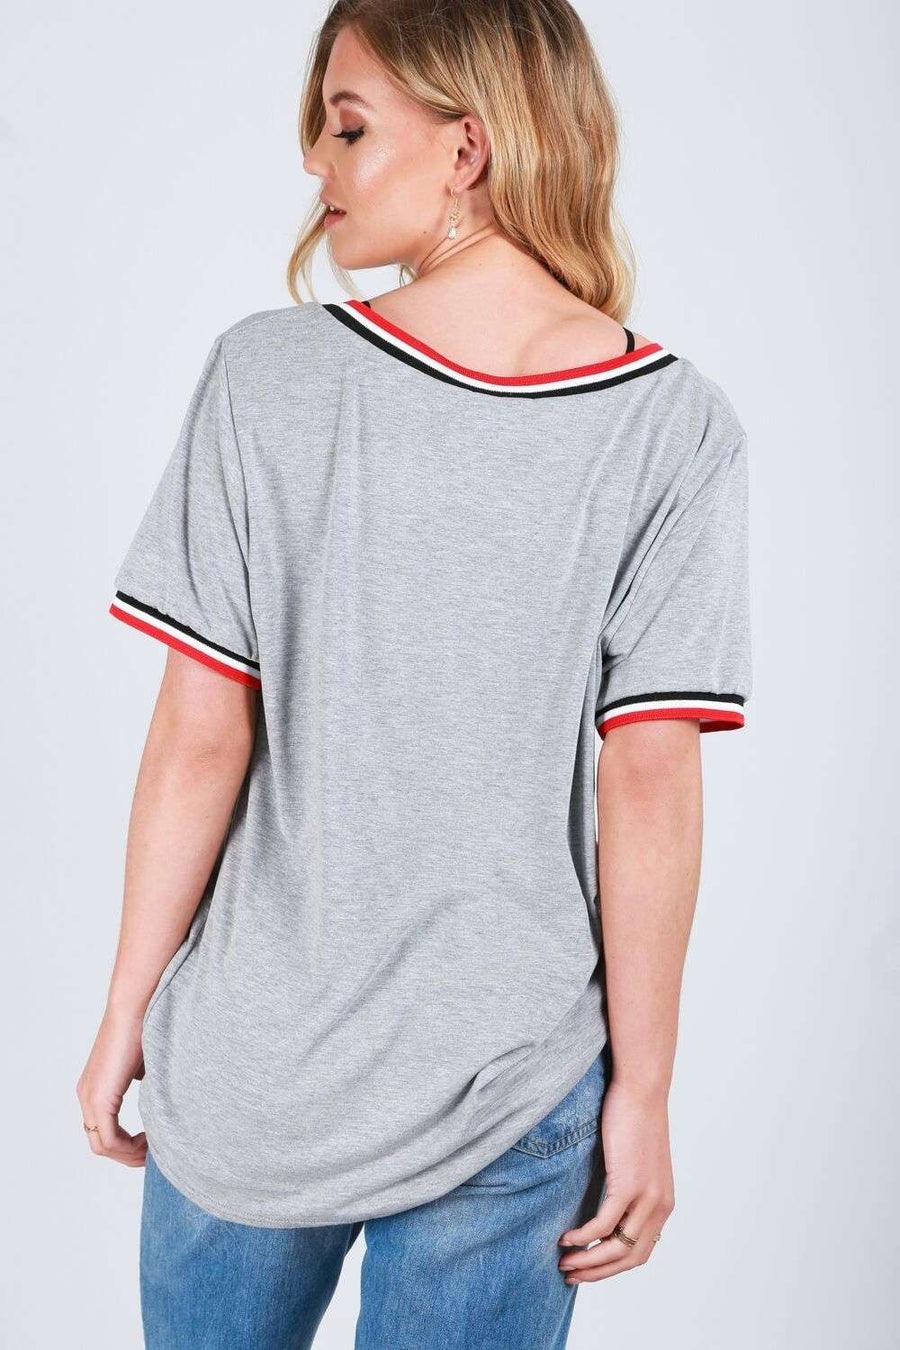 Elsie Oversized Vneck Striped Basic Tshirt - bejealous-com